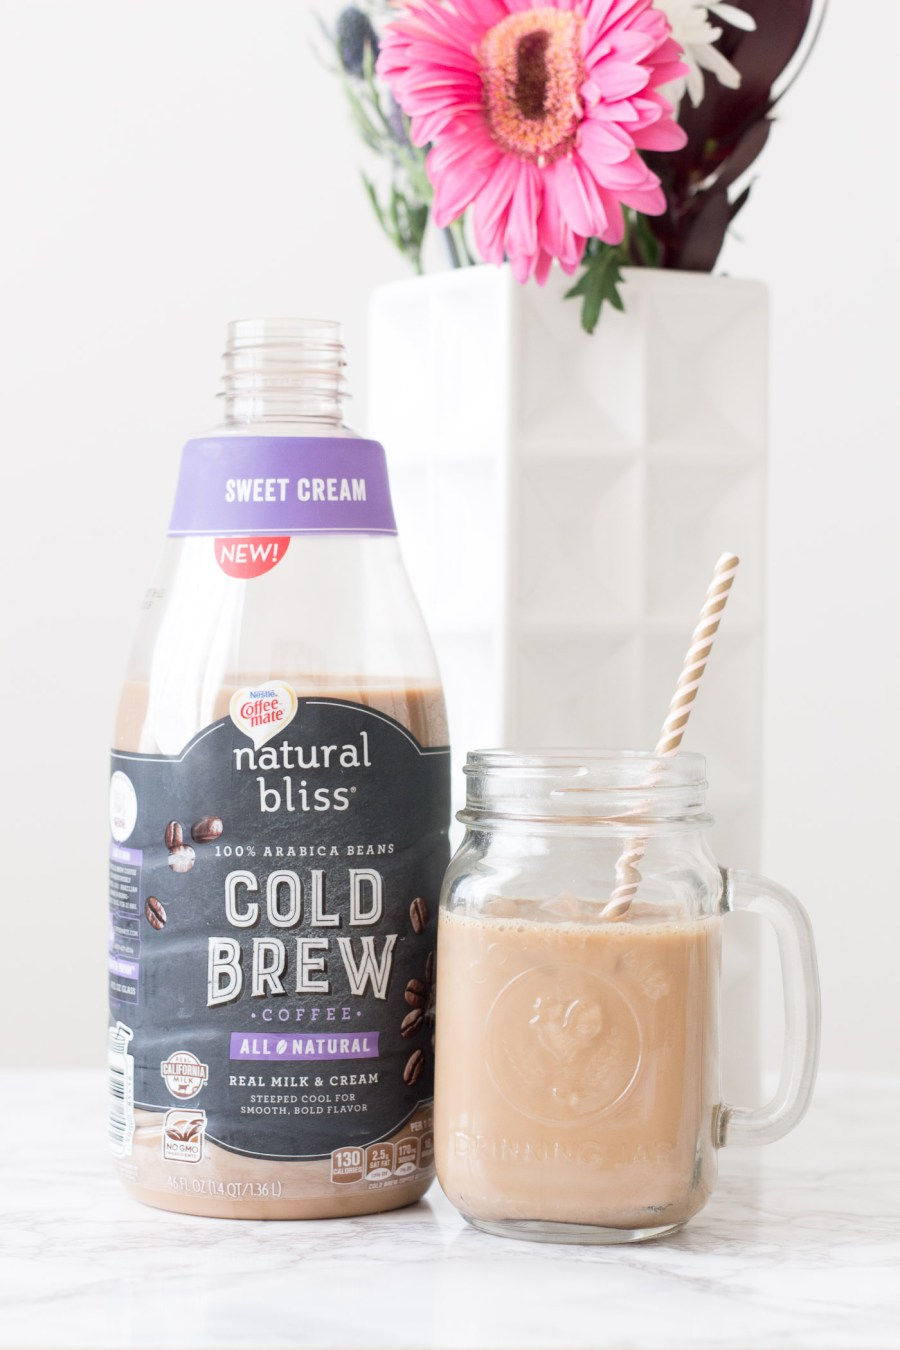 how to get dressed and out the door in 20 minutes, Coffee-mate cold brew